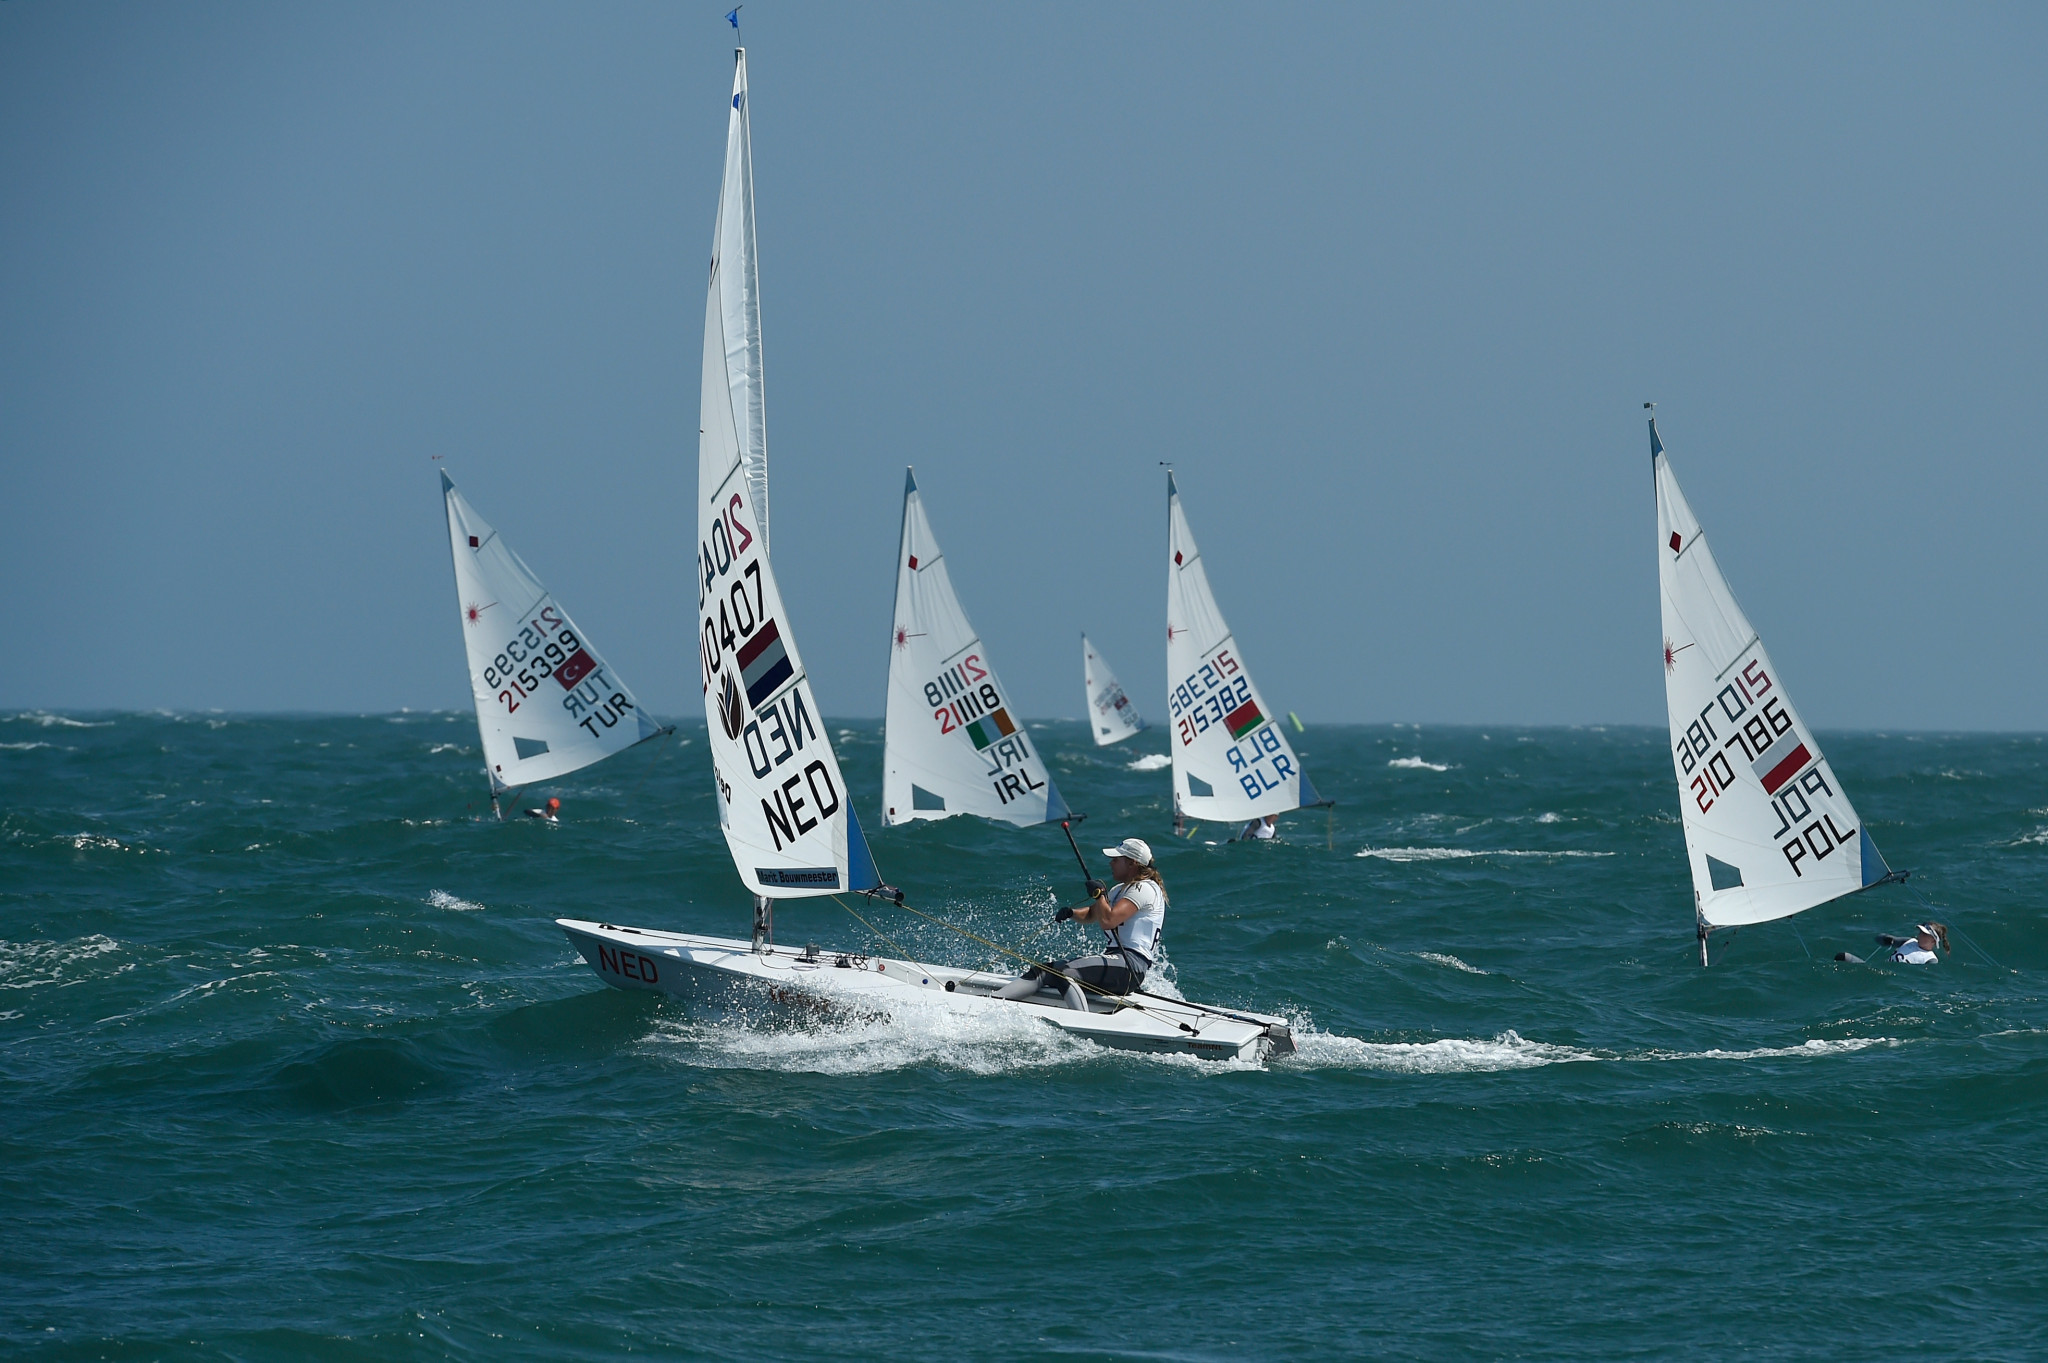 Olympic champion Bouwmeester claims lead at Laser Radial Women's World Championship